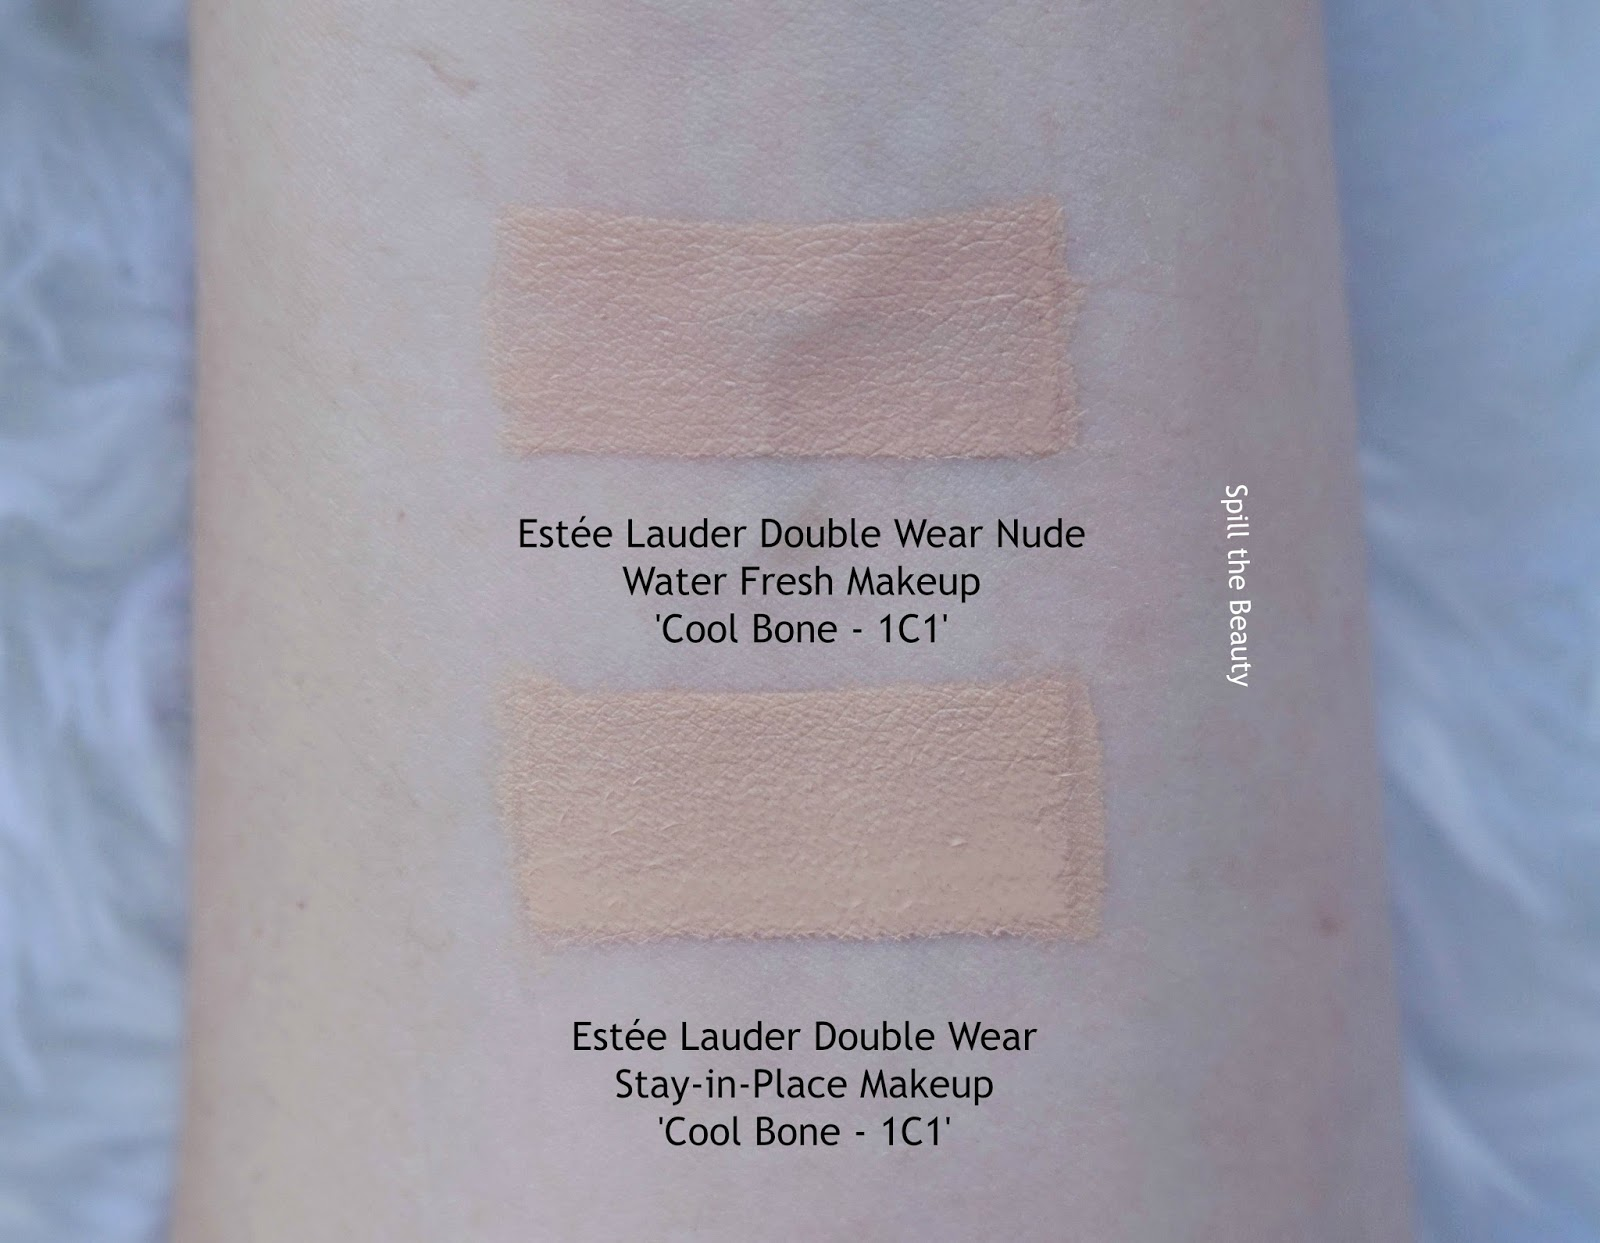 estee lauder double wear nude water fresh foundation review swatches 1c1 cool bone